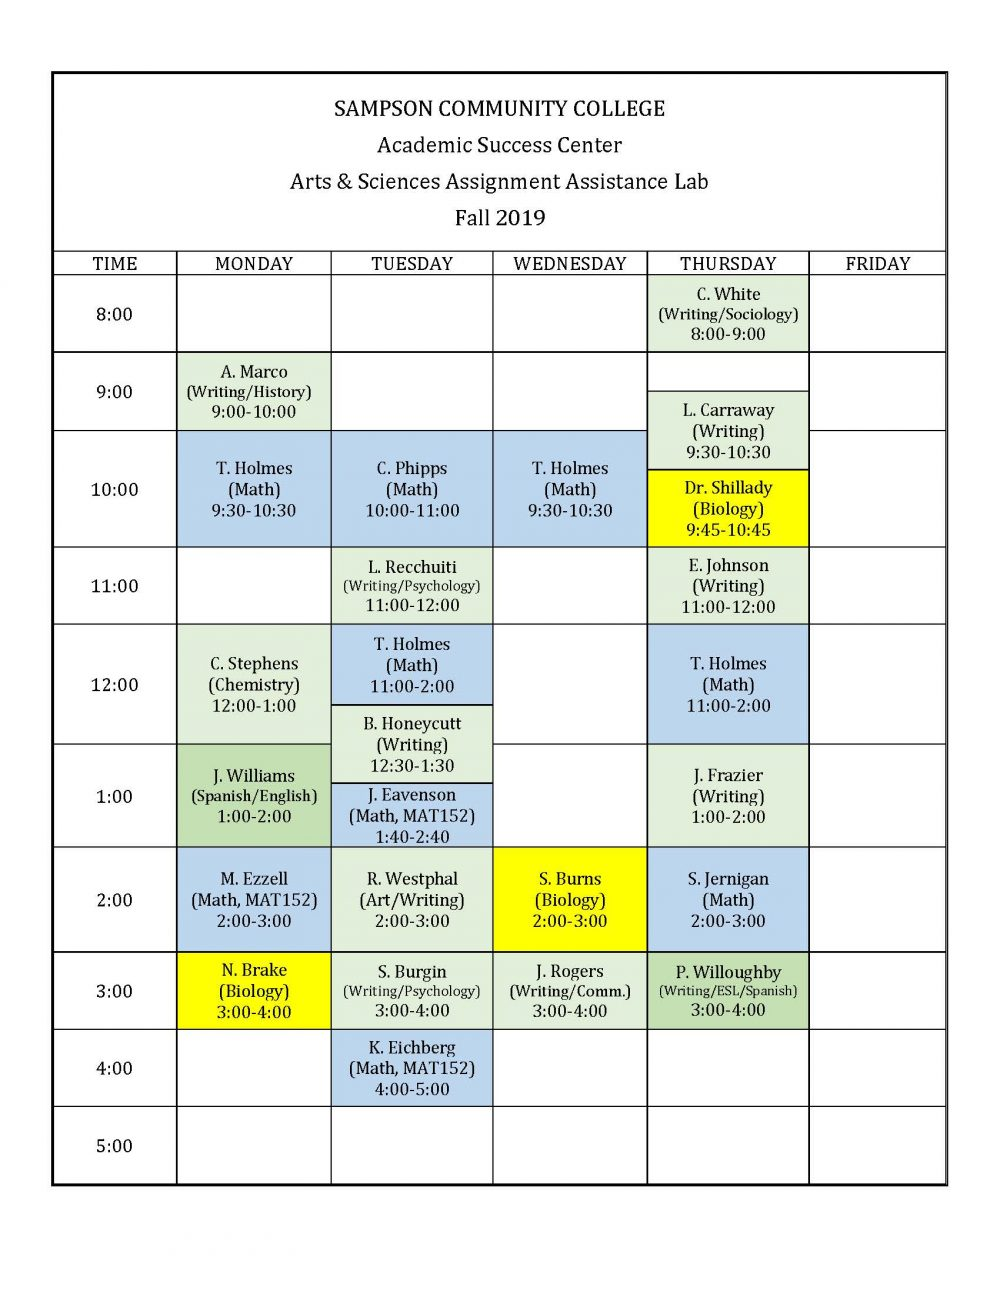 Arts & Sciences Assignment Assistance Lab Schedule